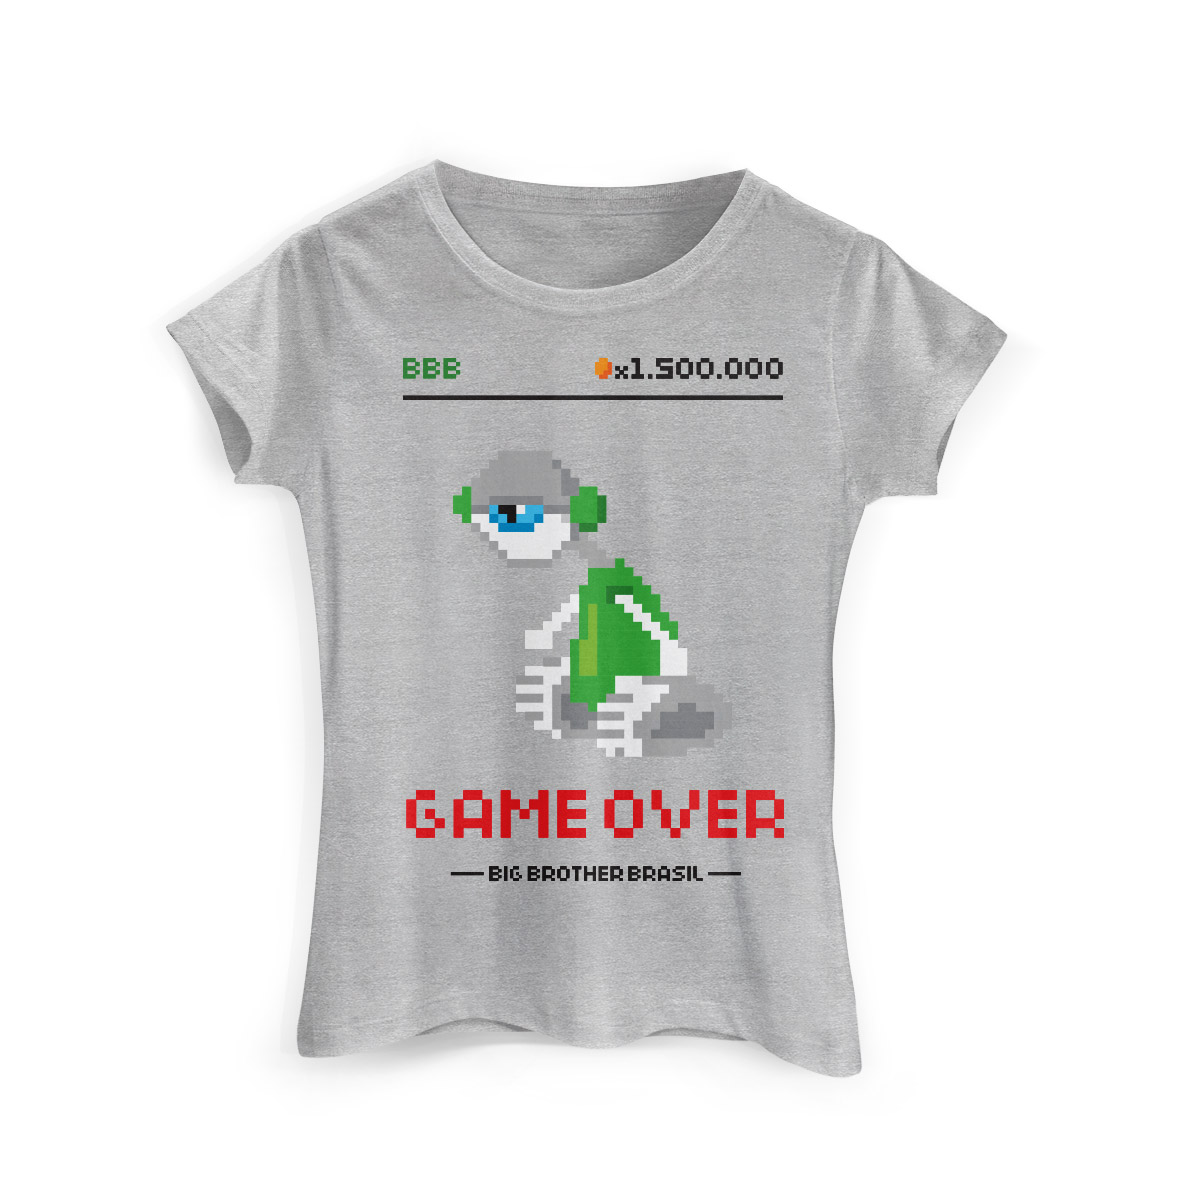 Camiseta Feminina Big Brother Brasil 15 Game Over Modelo 2